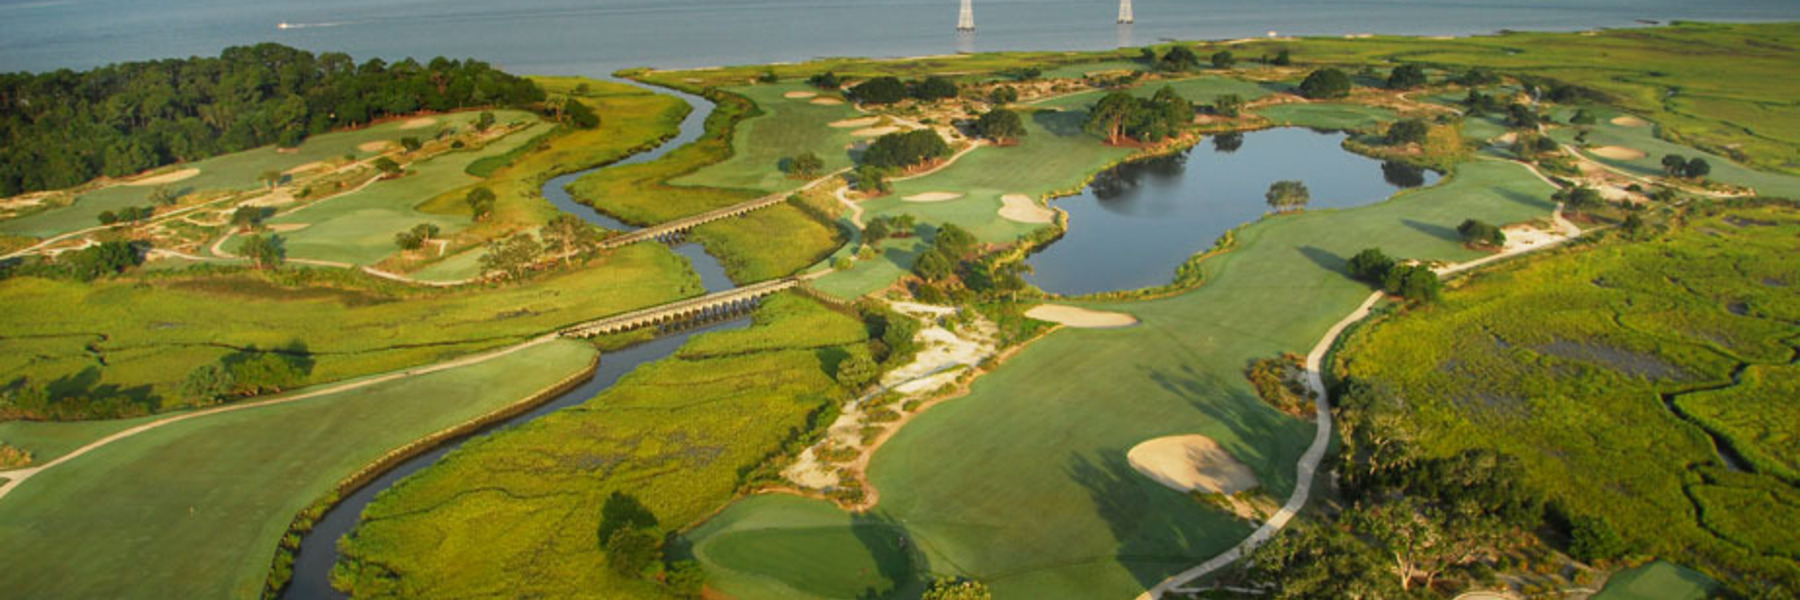 Golf Vacation Package - Sea Island Stay and Play w/ 3 Nights & 3 Rounds - For $389 per person / per day!